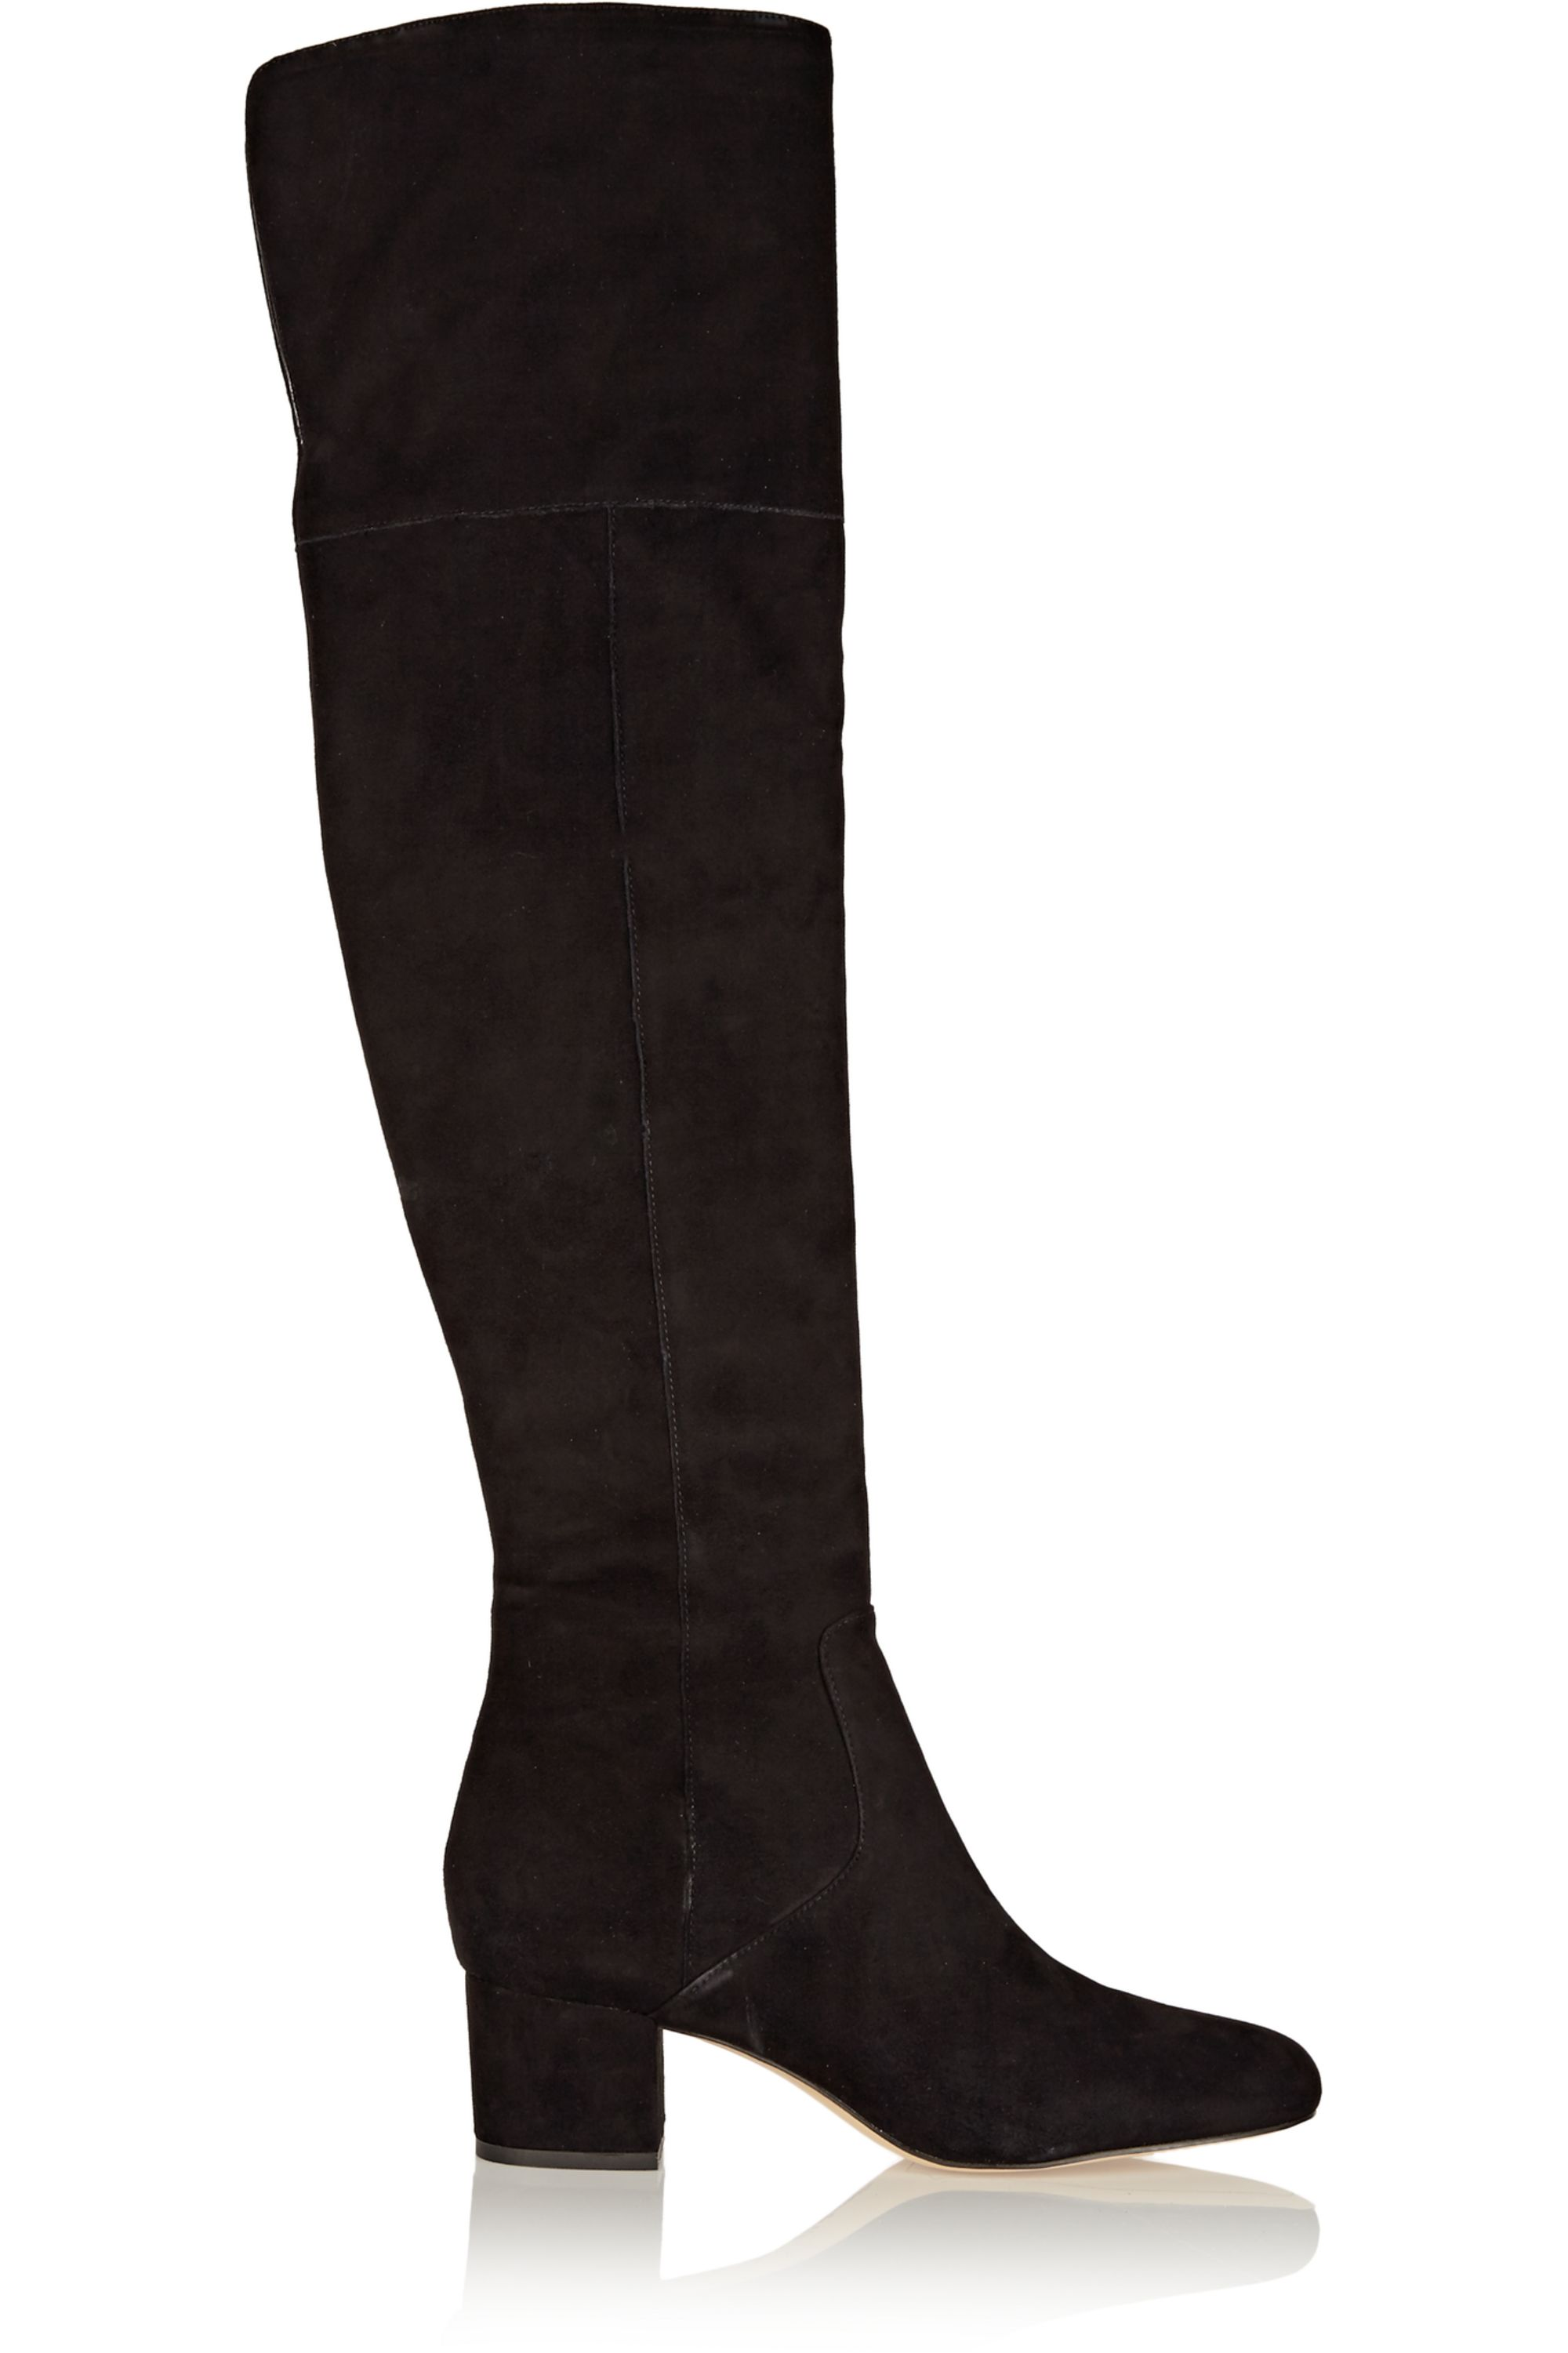 Sam Edelman over the knee boots size 7